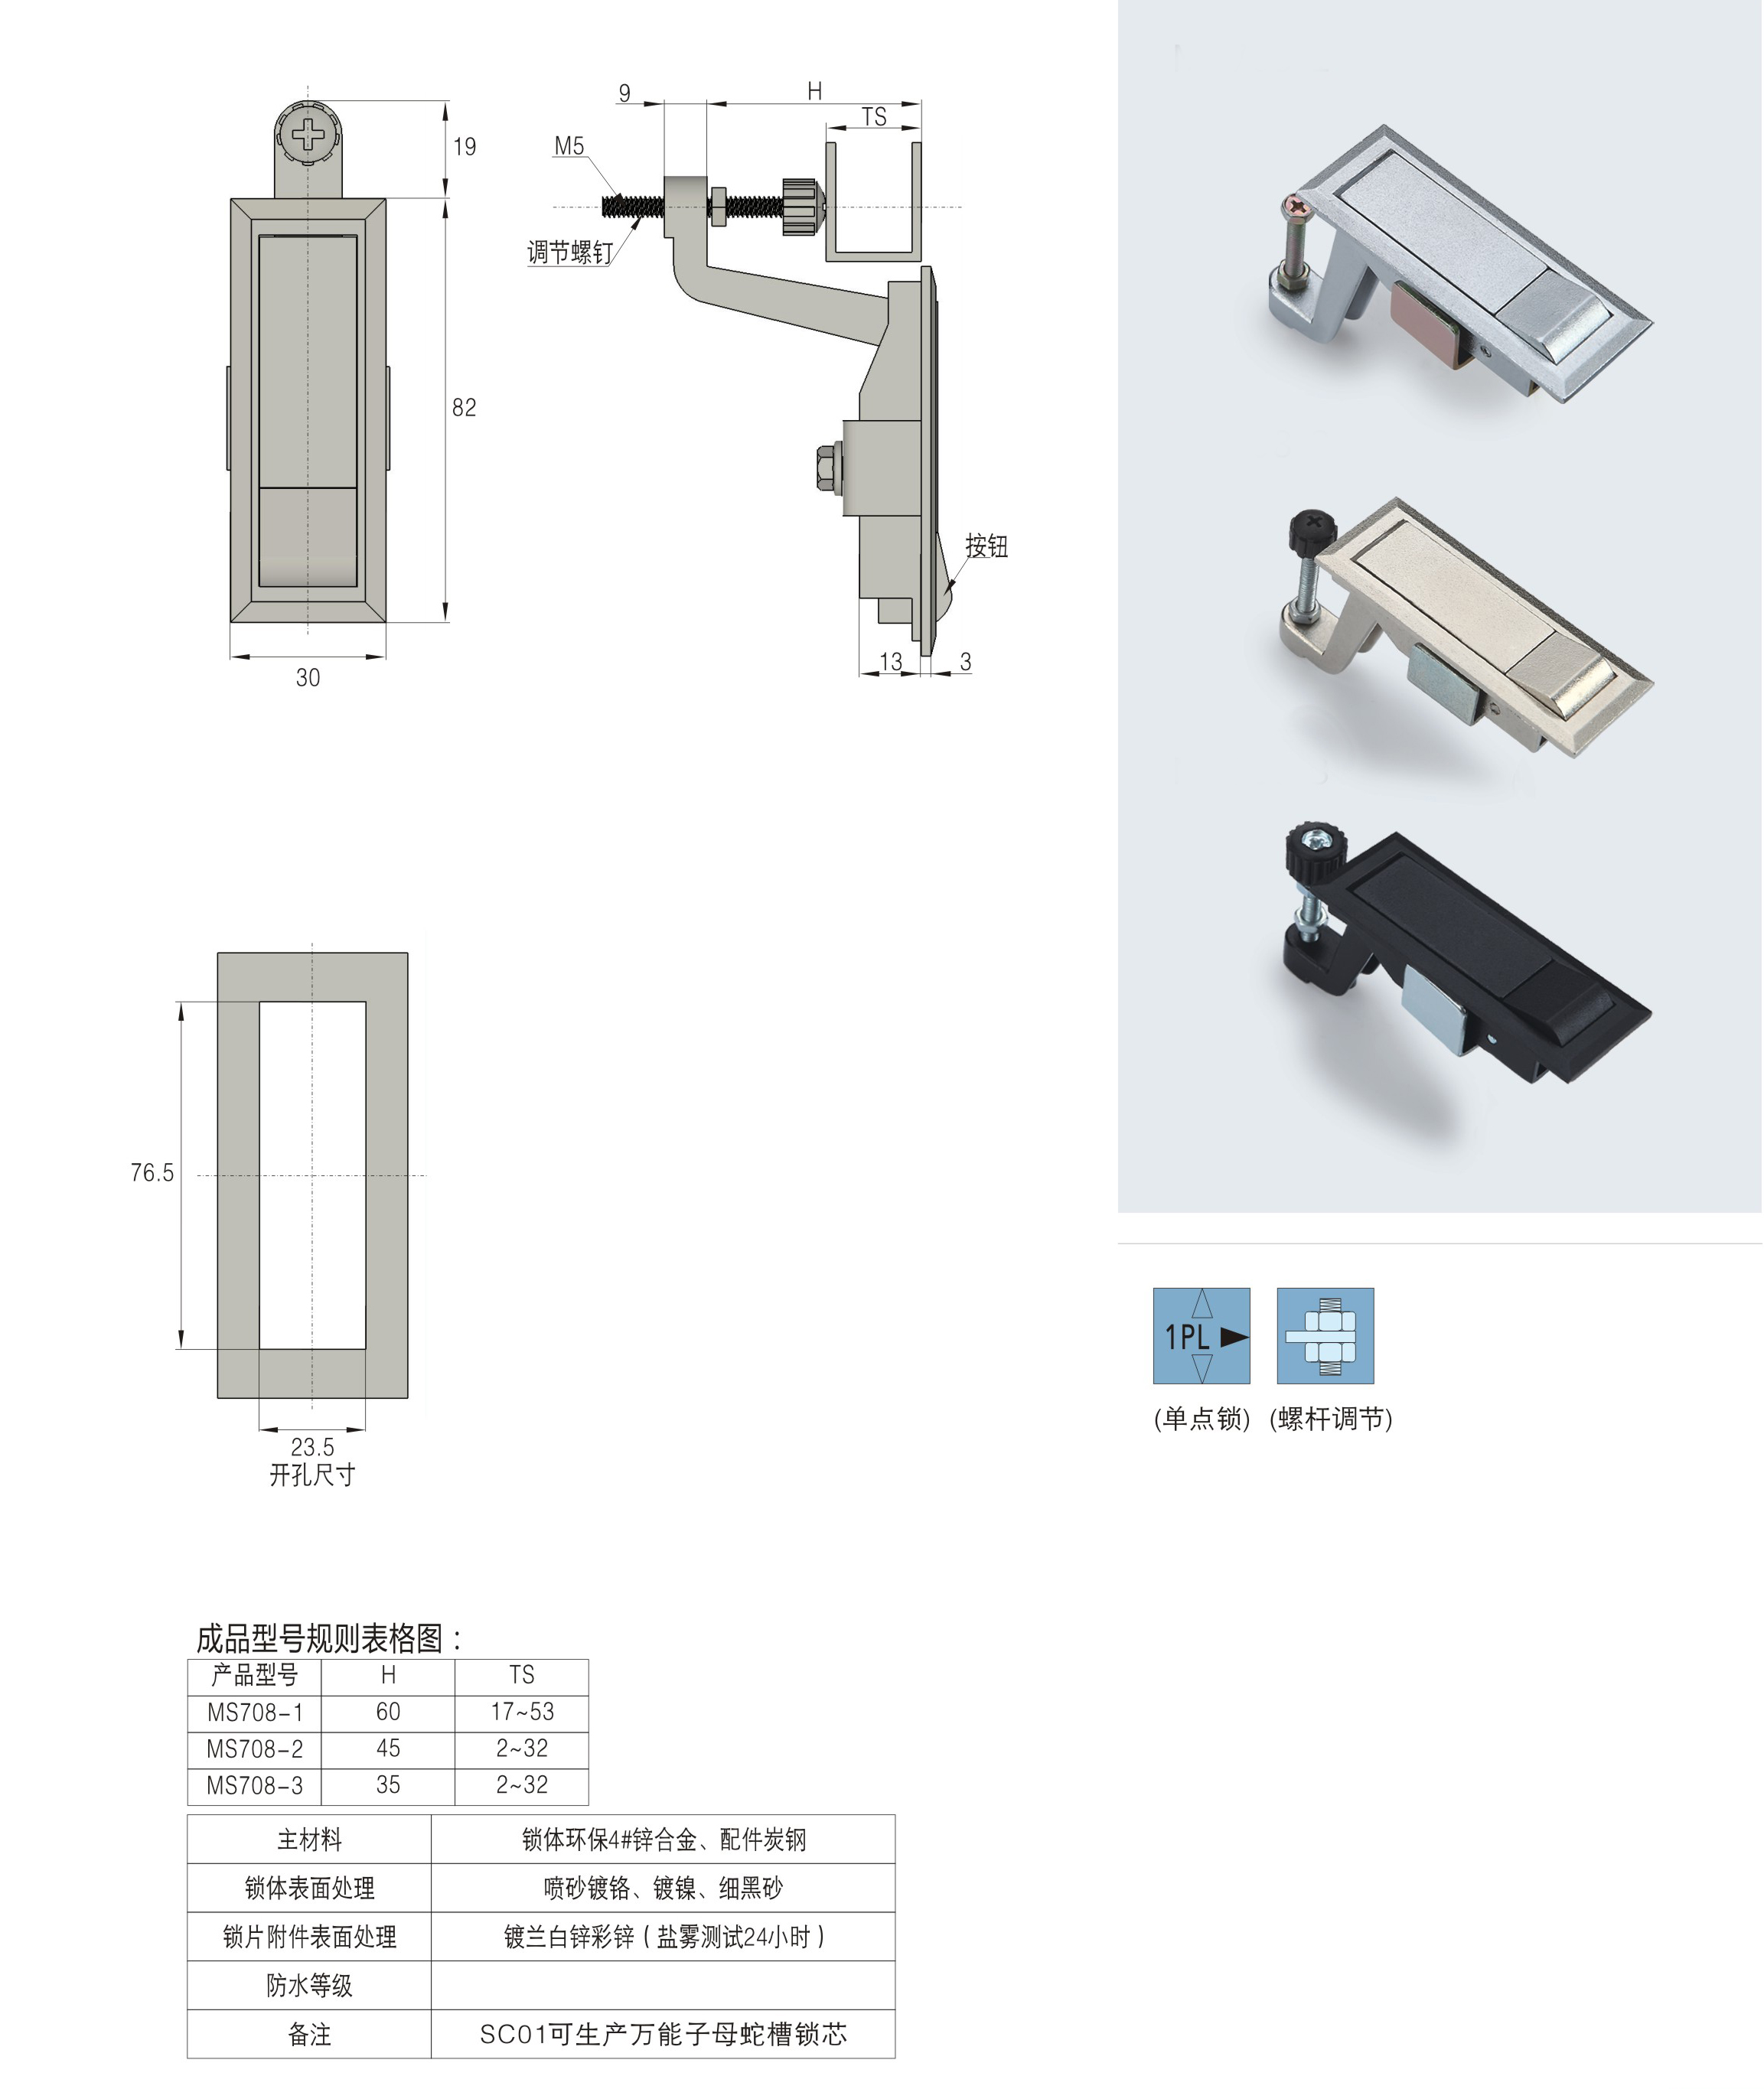 YH6103 Tuas Digerakkan Kompresi Latch Kunci Panel